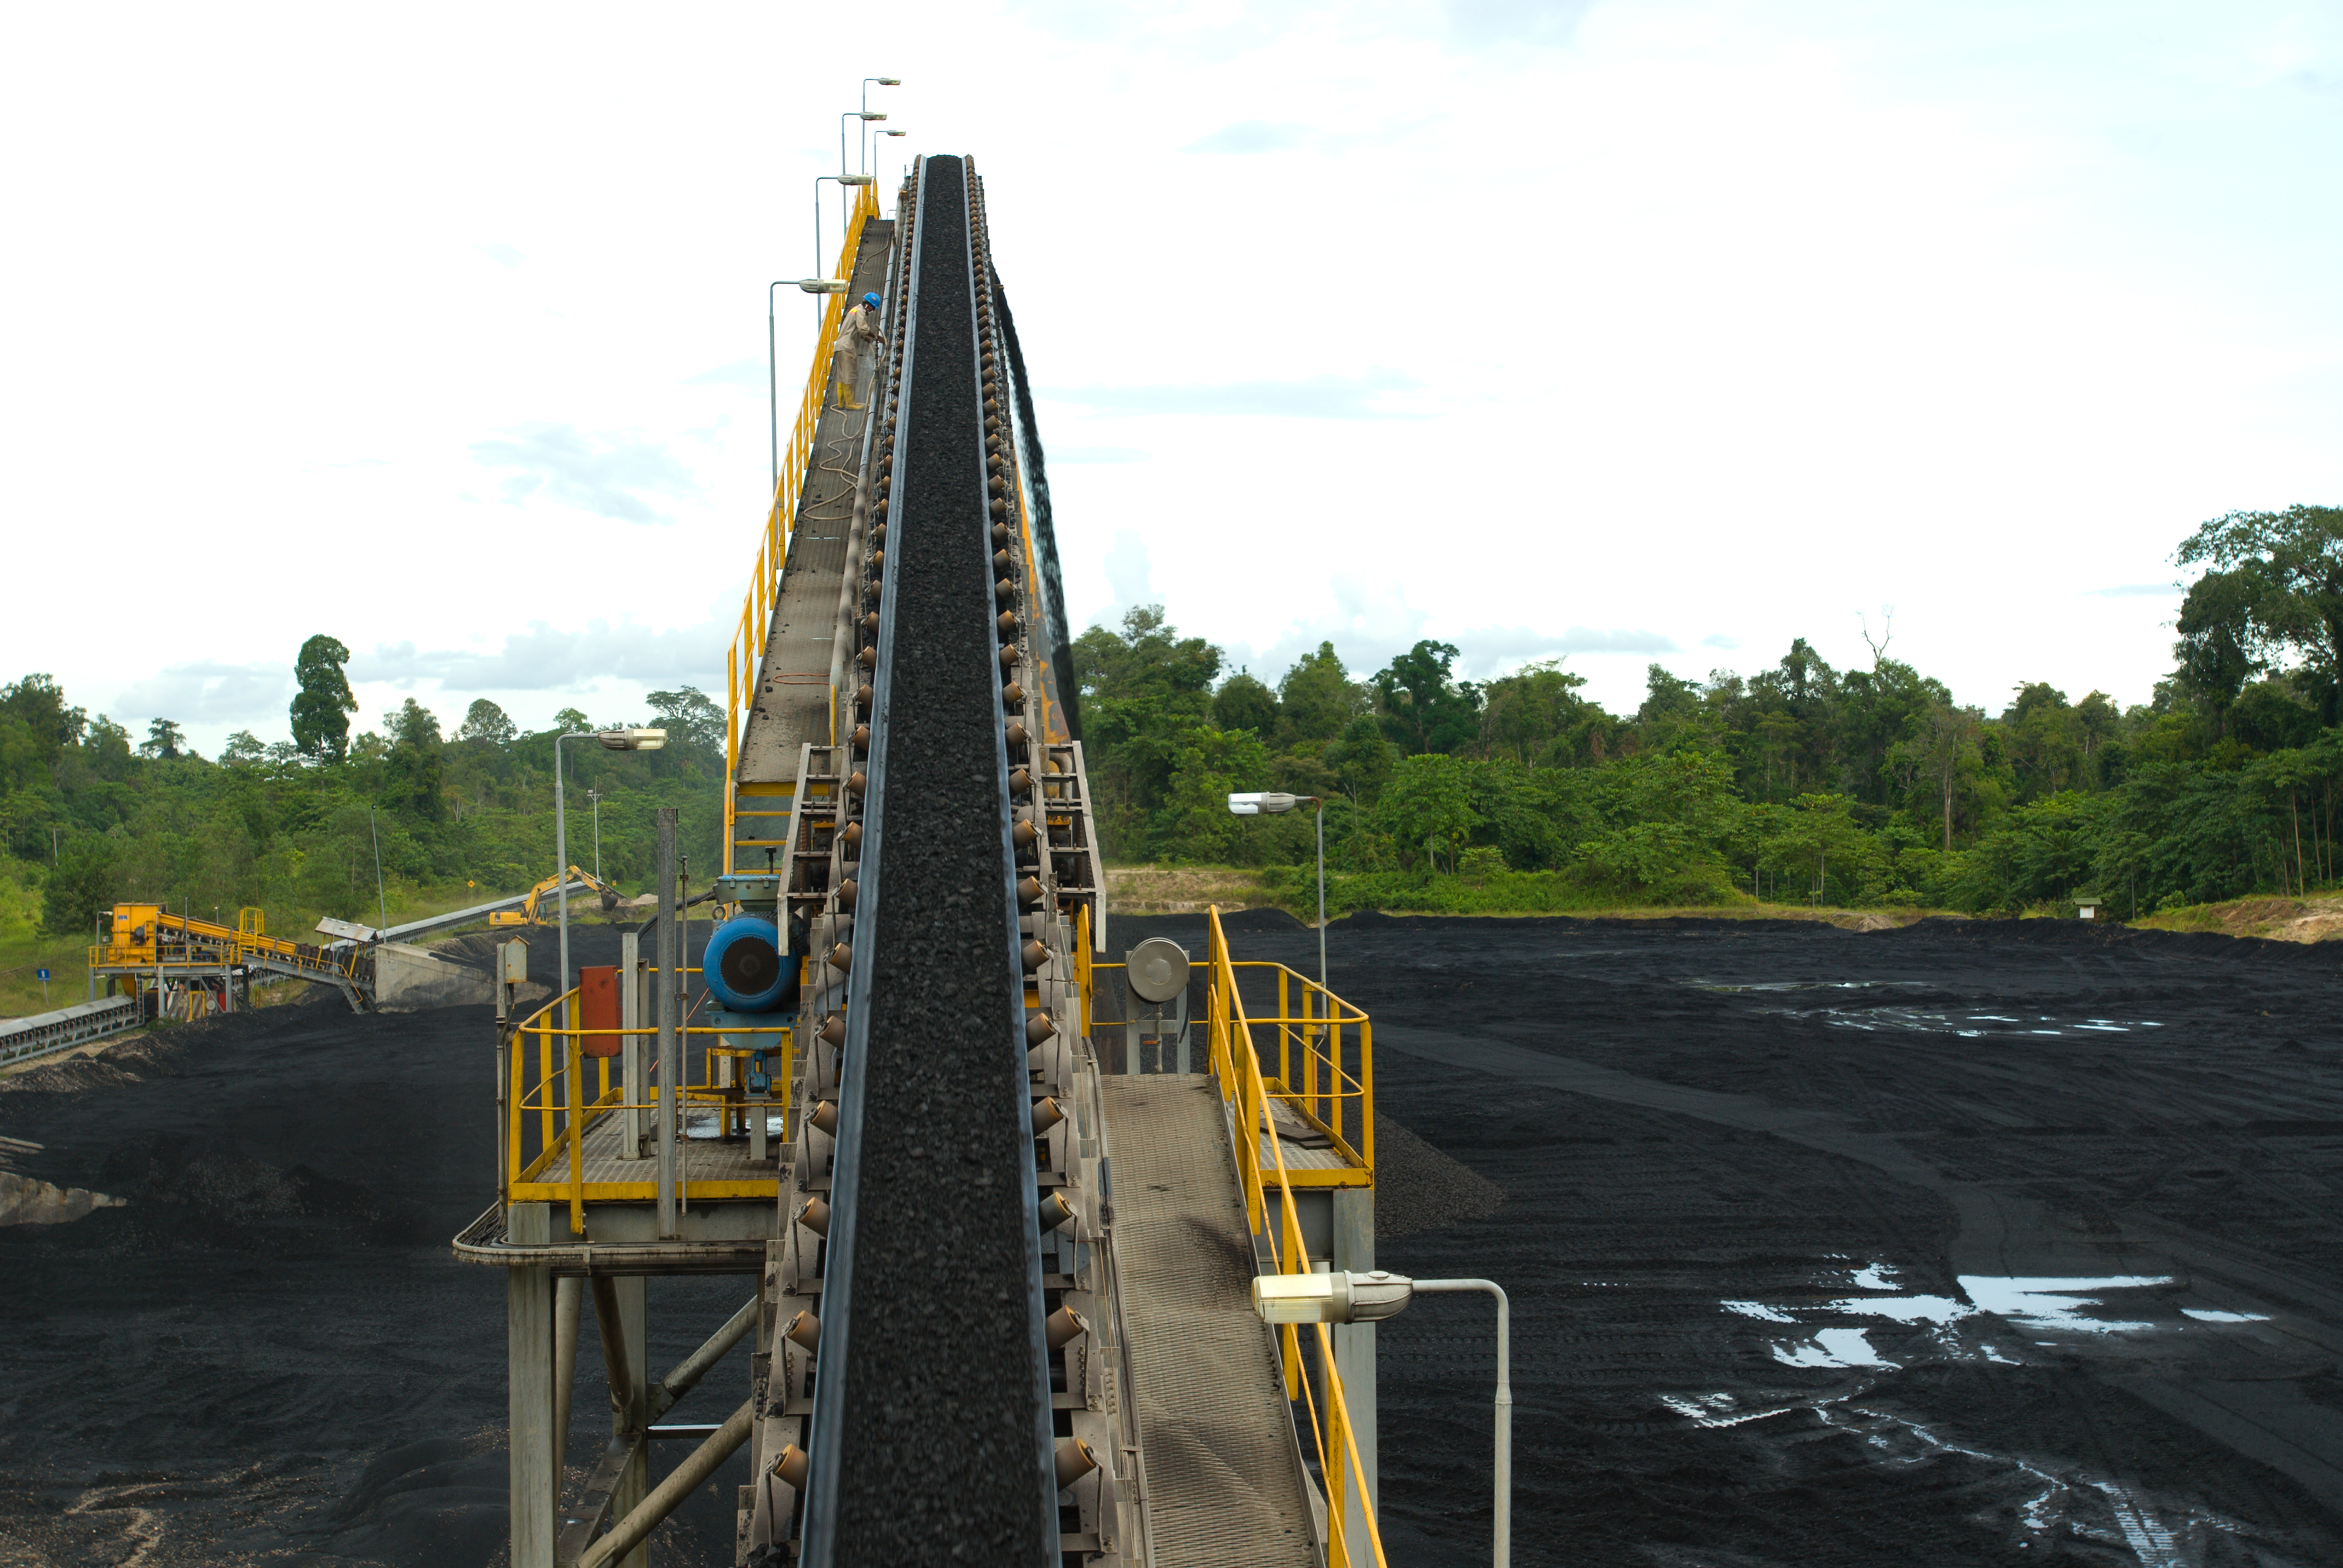 Coal production rose 20 million tons to 548.58 million tons this year